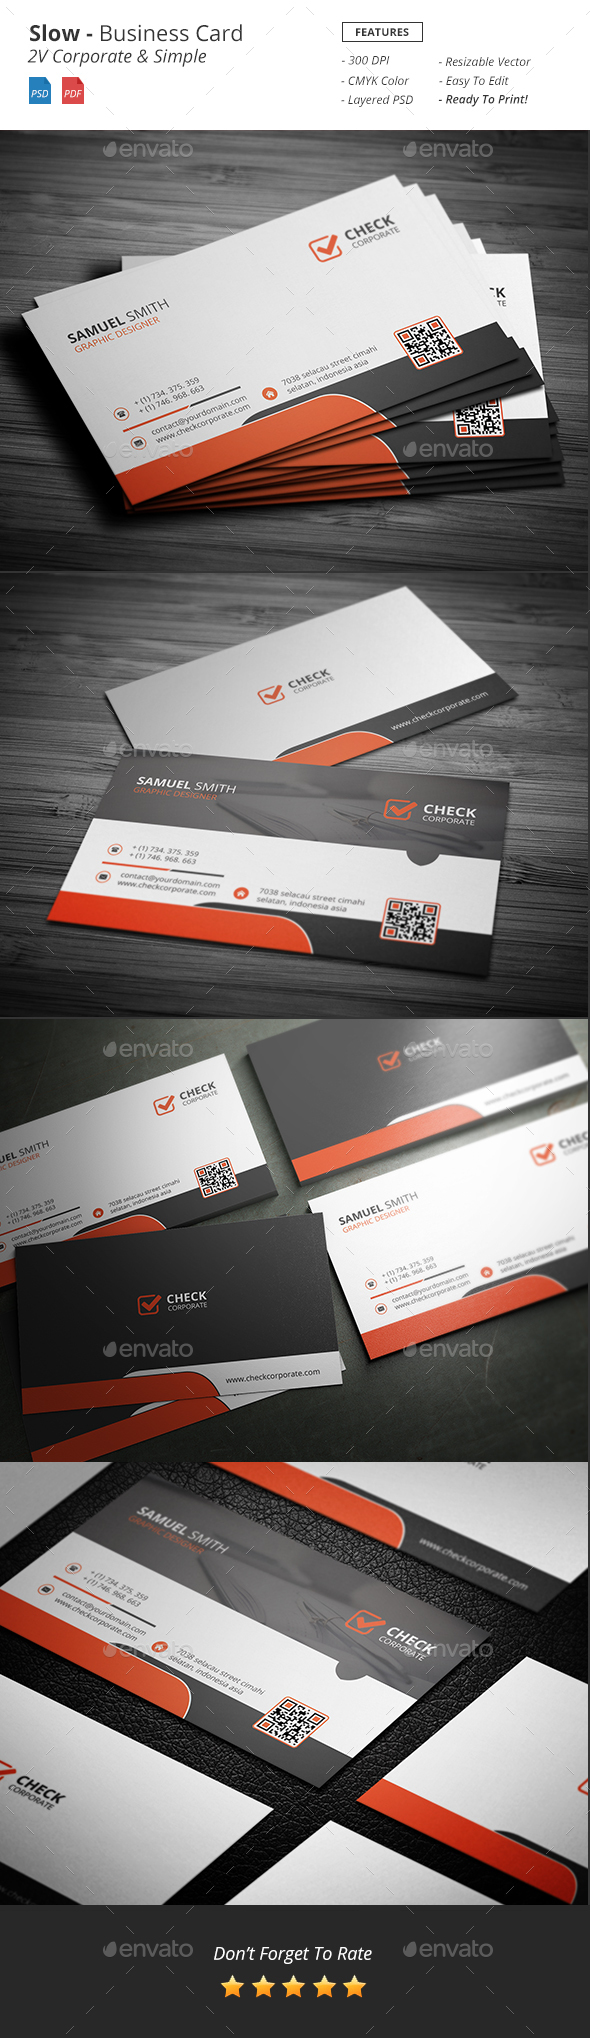 Slow - Corporate Business Card - Corporate Business Cards